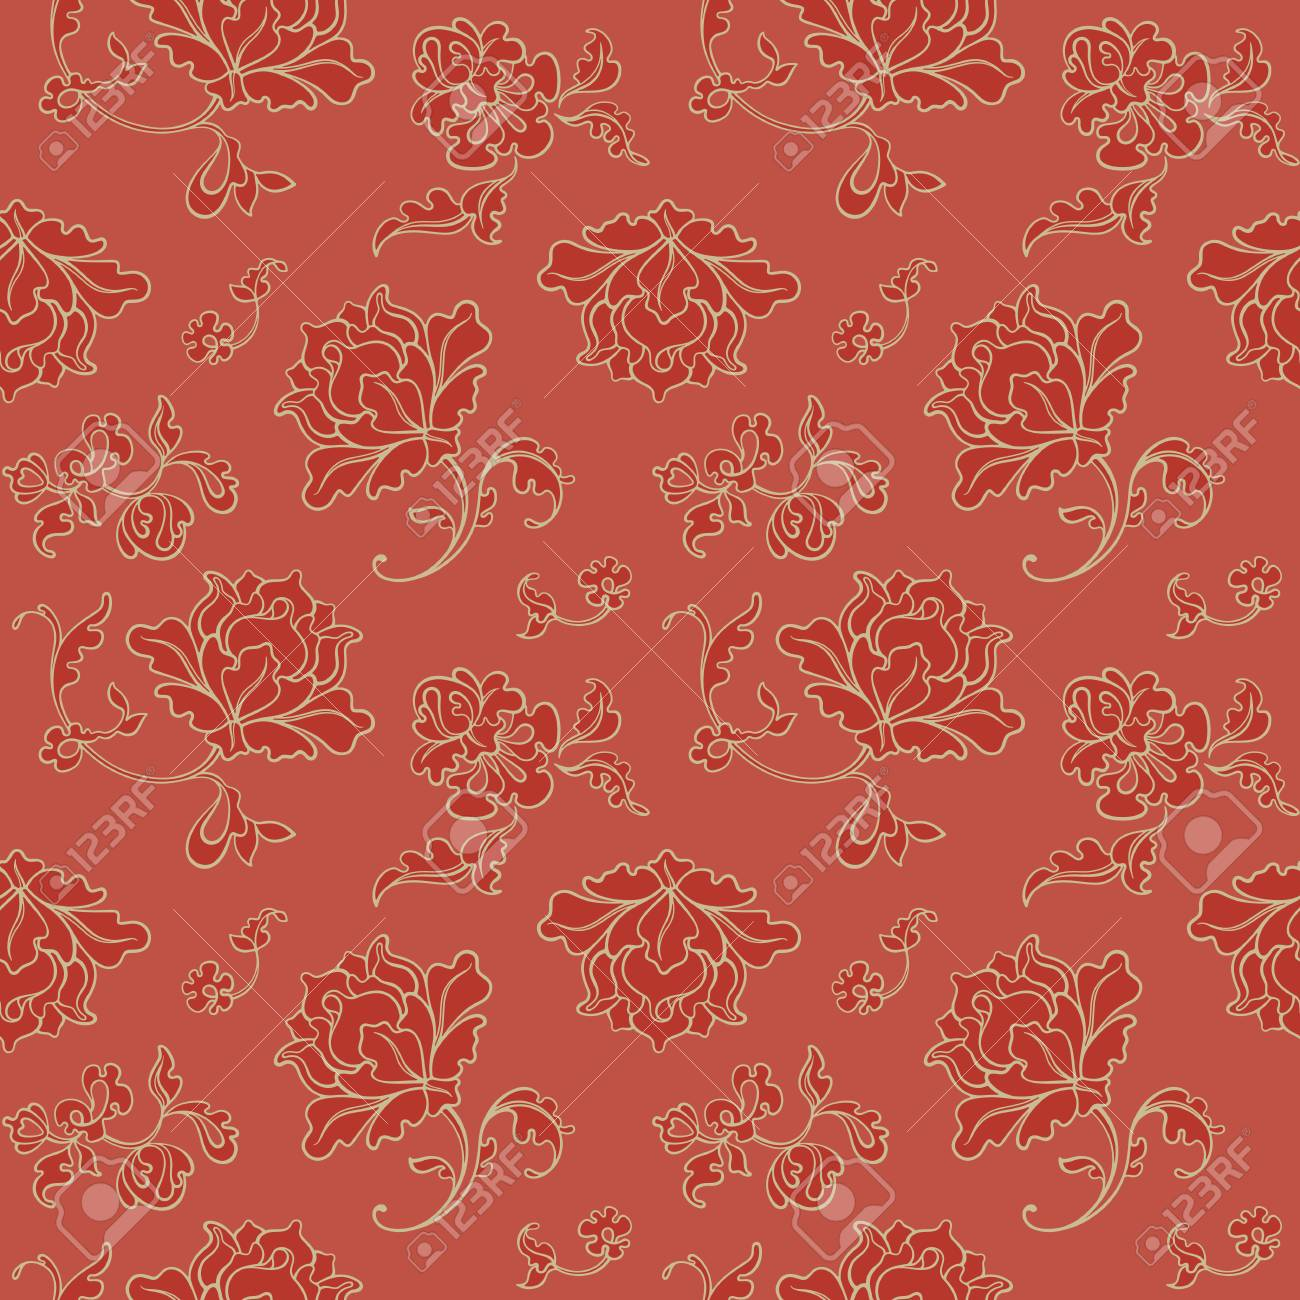 Seamless pattern. Decorative Red Background. Vector illustration. Floral background for cards, invitations, packing, textiles. - 118096365